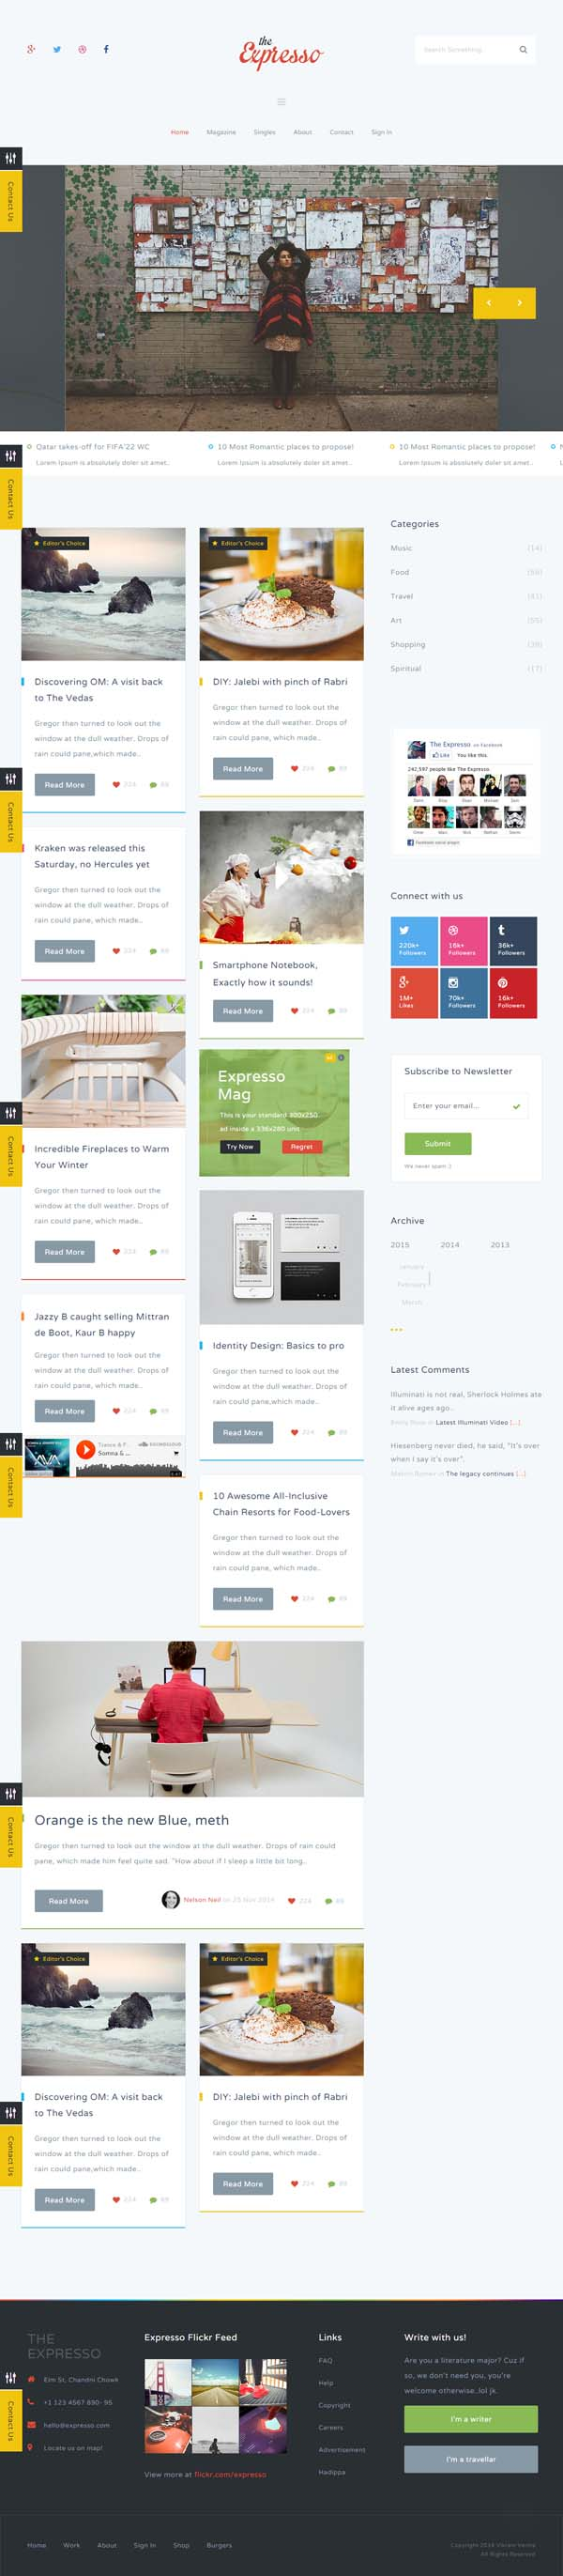 Expresso - A Modern Magazine and Blog Template